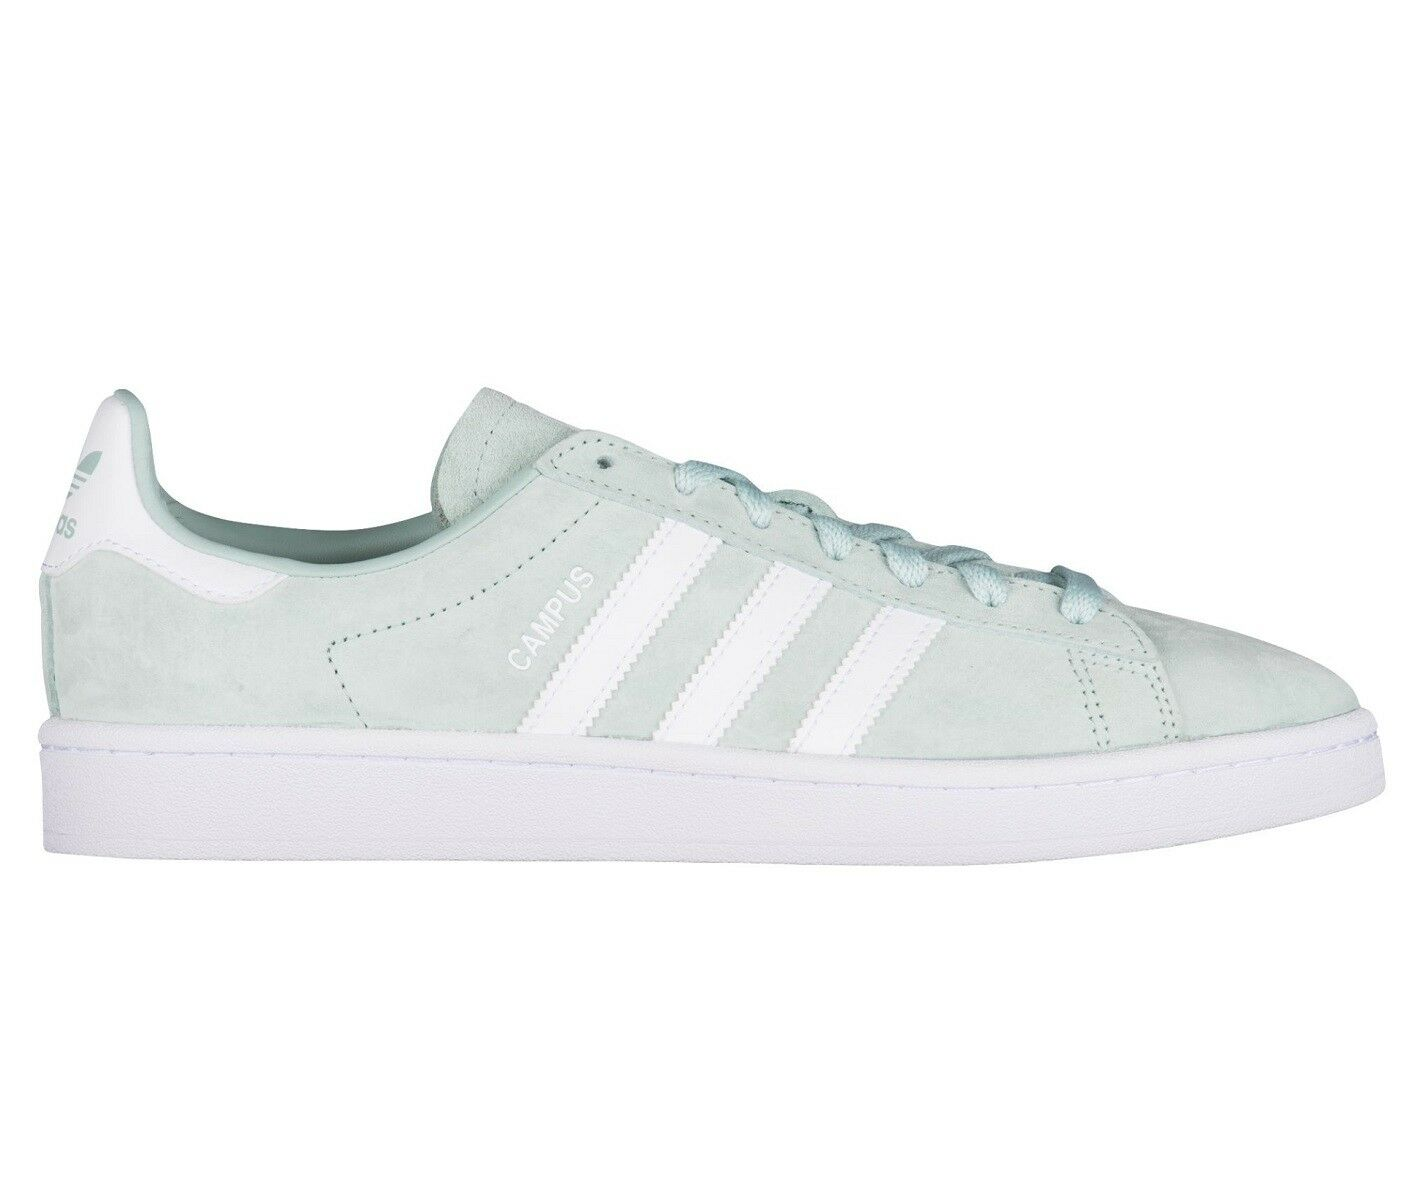 Adidas Campus Mens DB0982 Ash Green White Nubuck Suede Athletic shoes Size 9.5